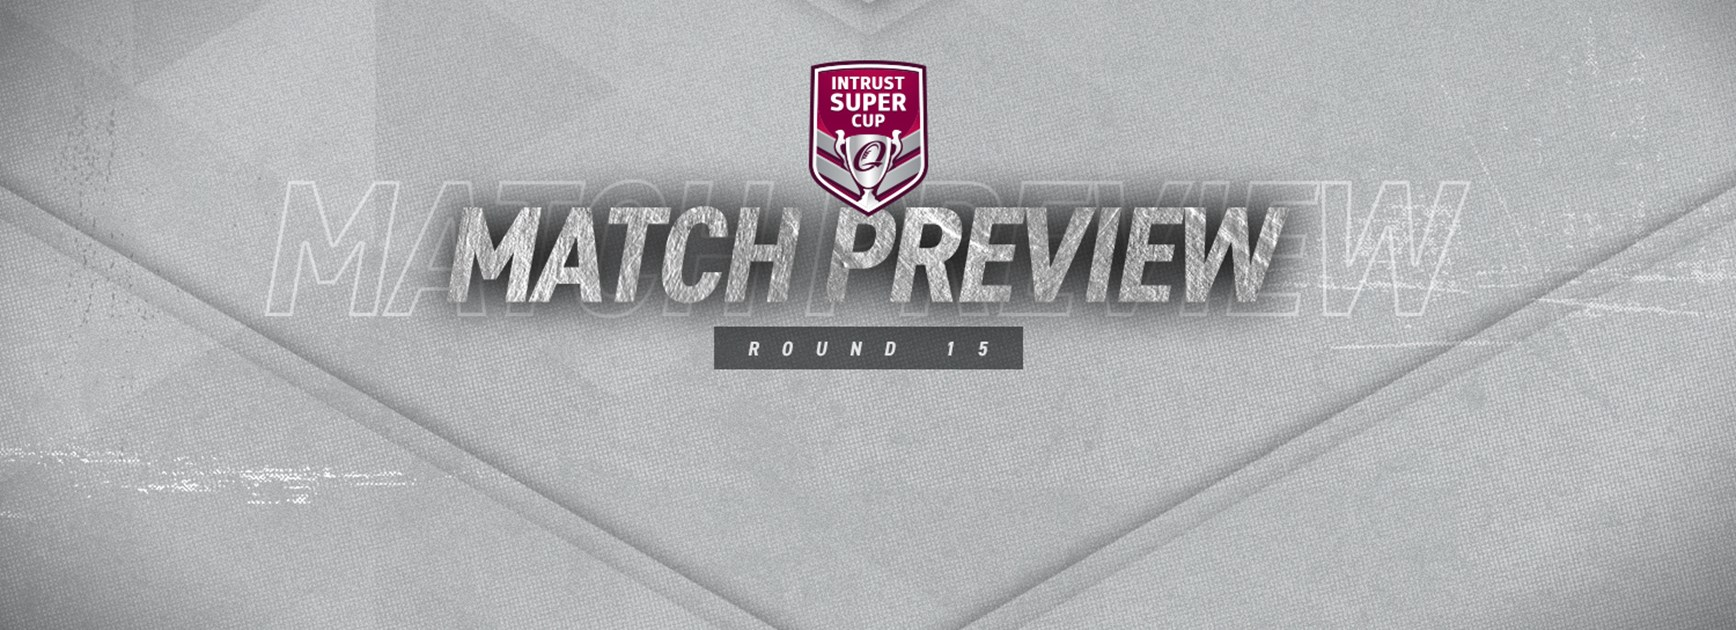 Intrust Super Cup Round 15 preview